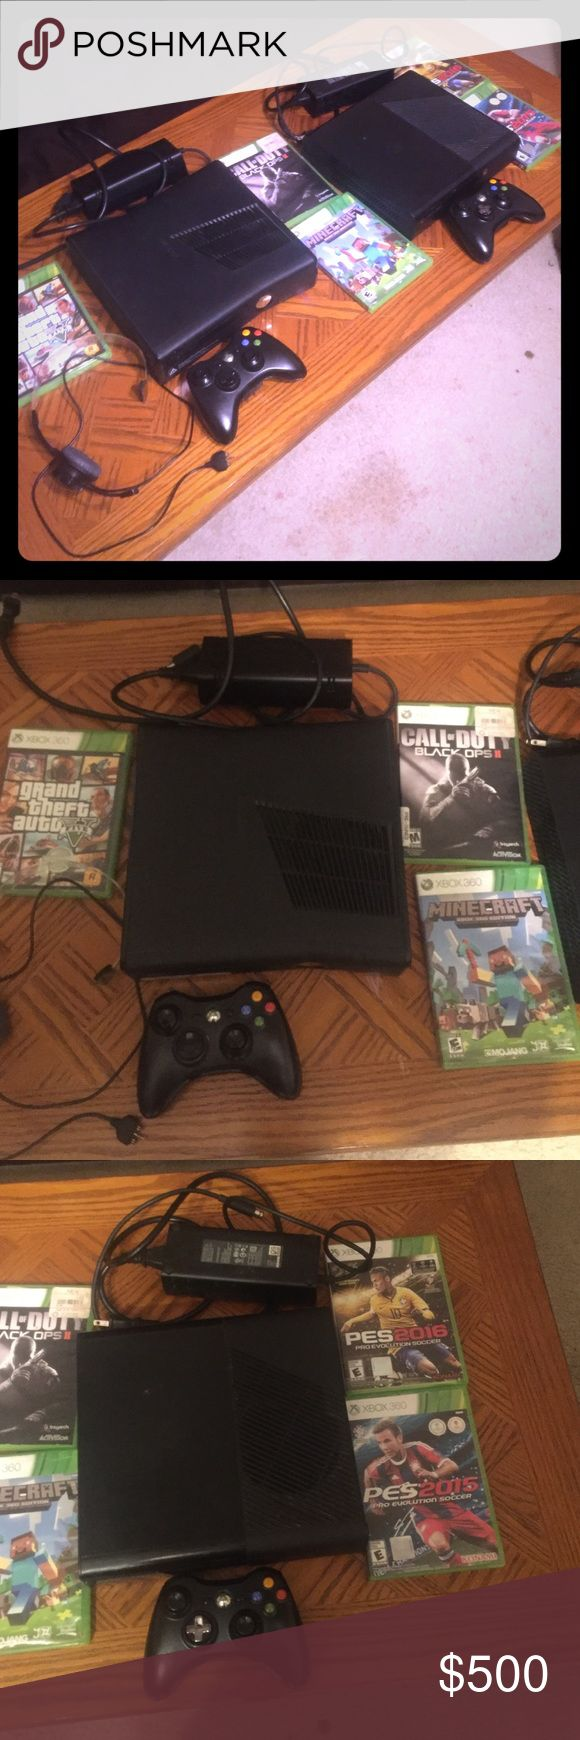 Xbox 360 There is 2 Xbox 360s and there is bo2, gta5, pes 15&16, and minecraft, 2 controllers and a head set or mic I only used them for about 10 months they work good and there is hard drives xbox Other